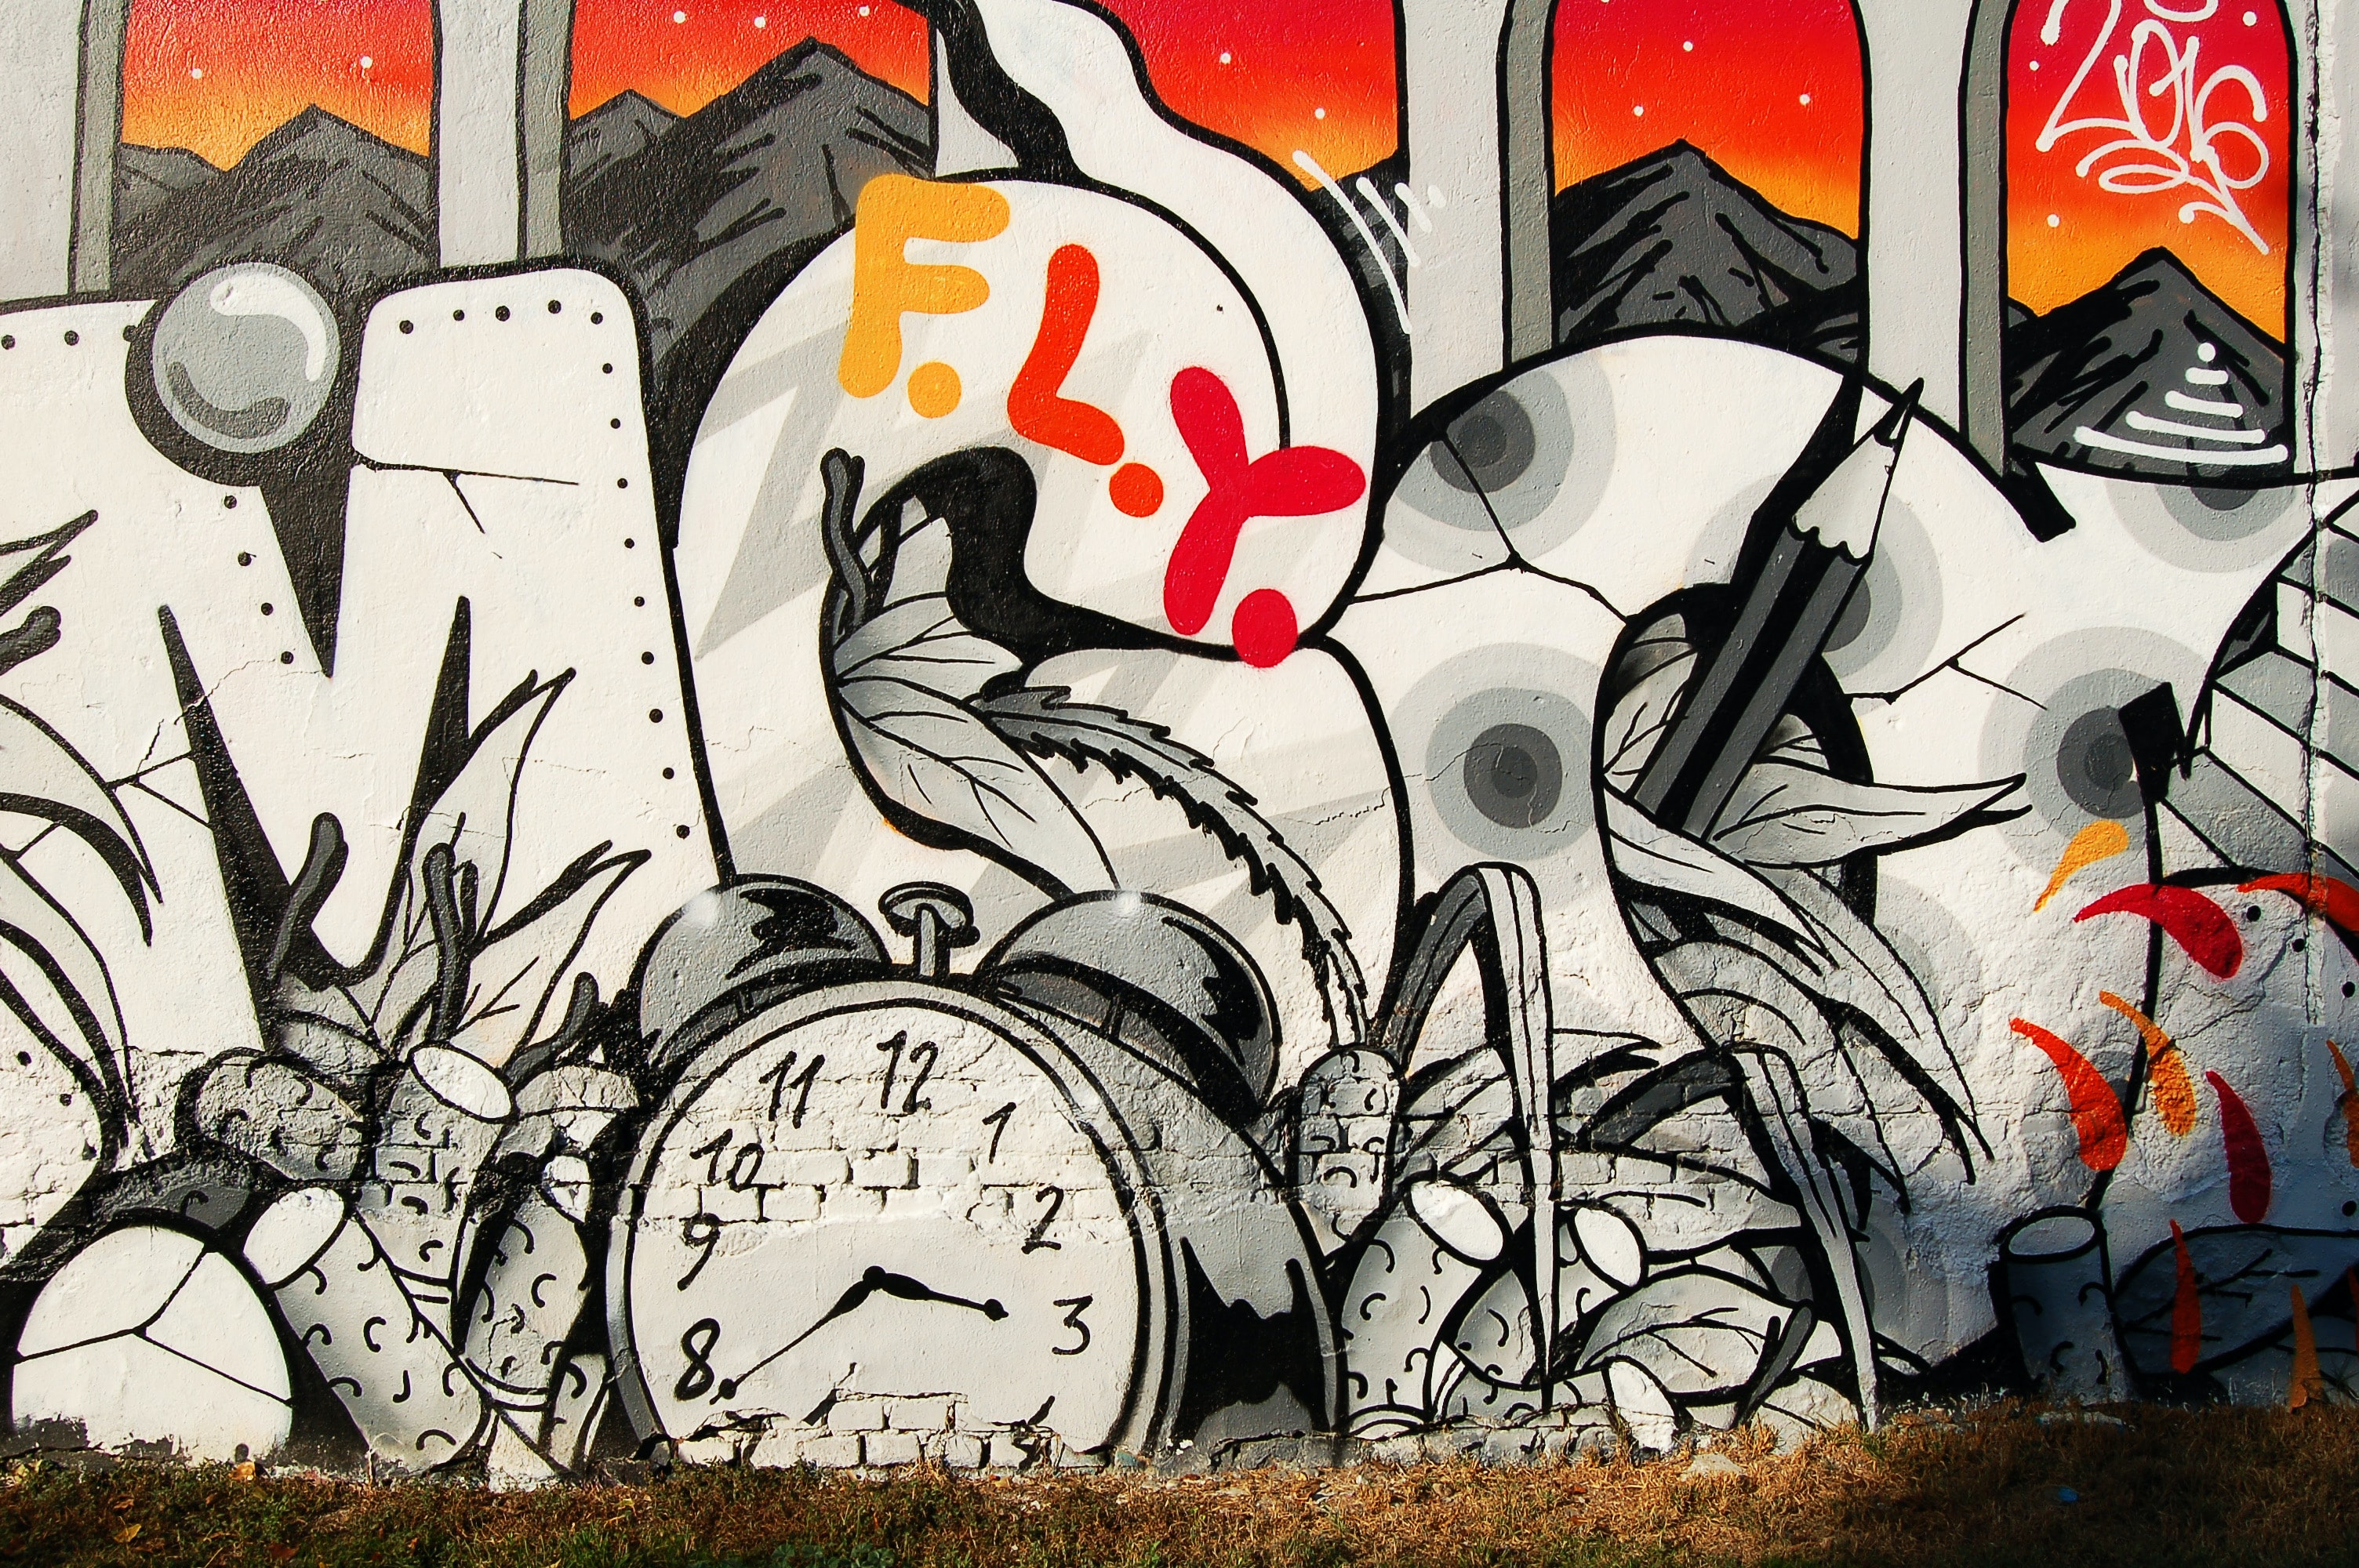 Graffiti writing on a wall with a clock and dynamite.